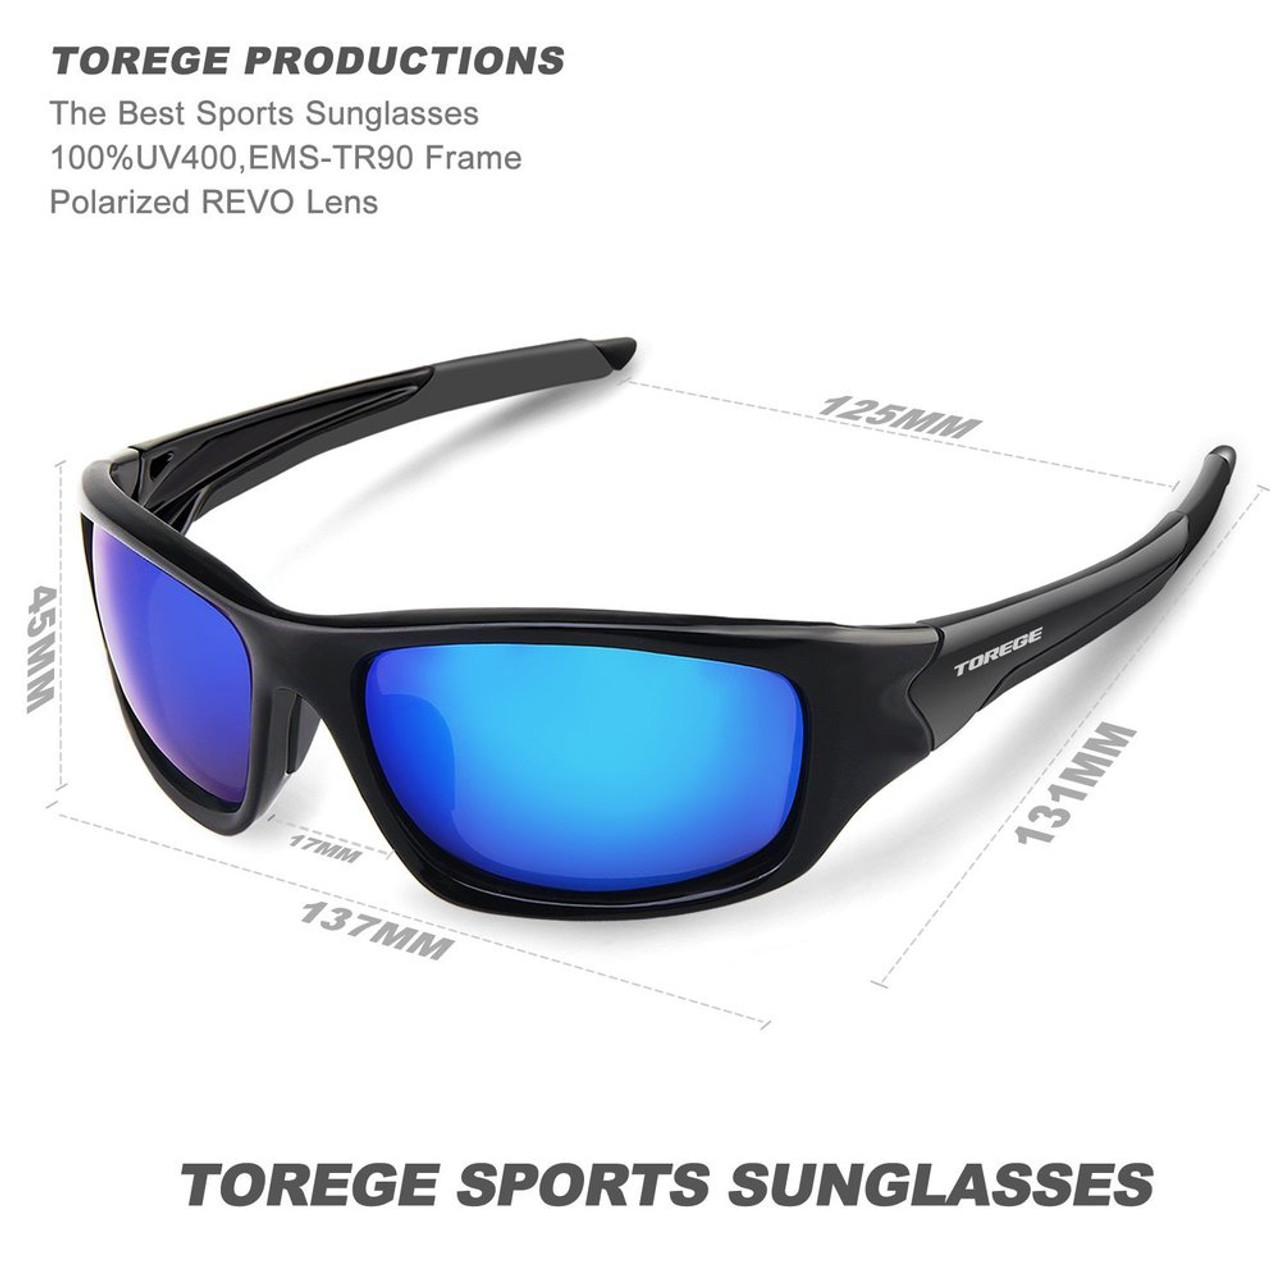 16a109b49f ... TOREGE Men s Fashion Polarized Sunglasses For Driving Glasses TR90  Unbreakable Frame Eyewear Unisex 100% UV400 ...